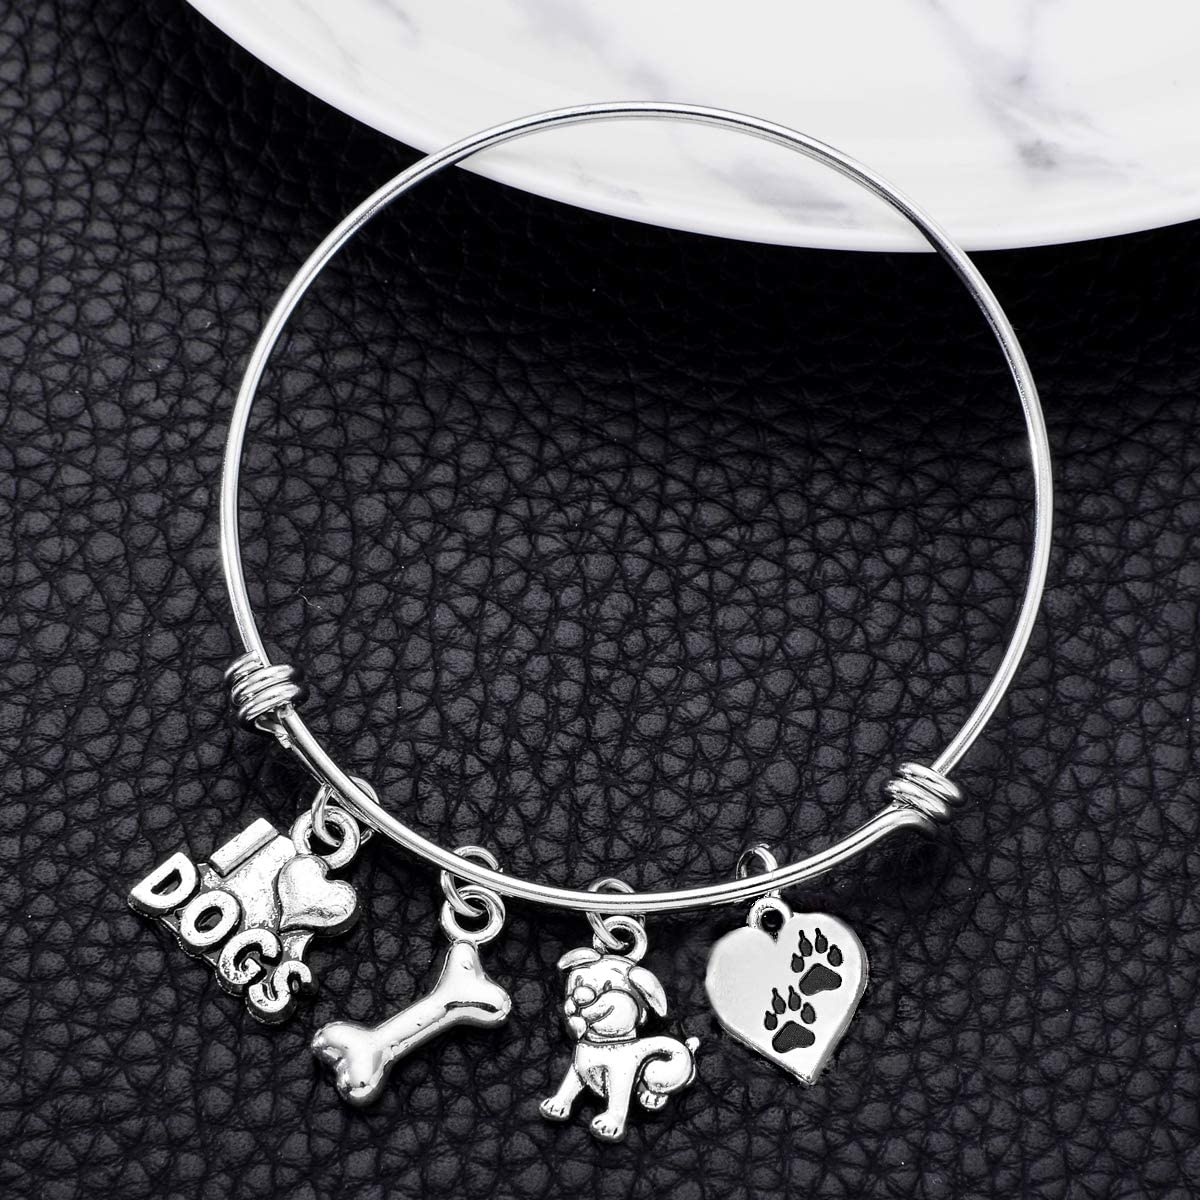 ODLADM Dog Charms Bracelet I Love Dogs Paw Print Dog Lover Jewelry Gifts for Her